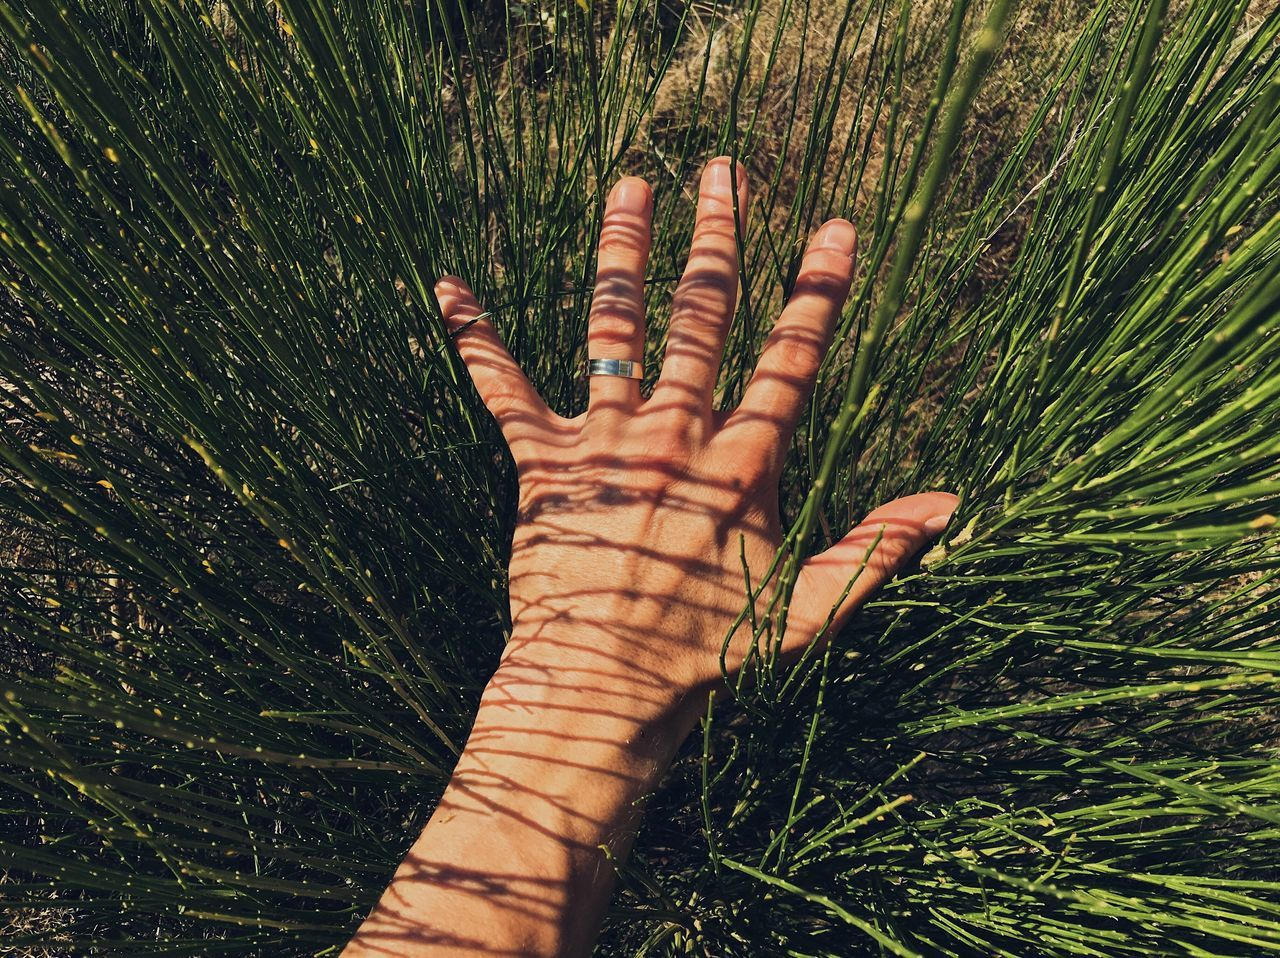 Sunny lines... Grass Human Hand Human Body Part Green Color Outdoors Palm One Person Day Nature People Close-up Adult Adults Only My Favorite Photo Details Of My Life VSCO Shadow Shadows & Lights Pattern Sunlight Made In Romania Close Up Texture Nature Lines Live For The Story